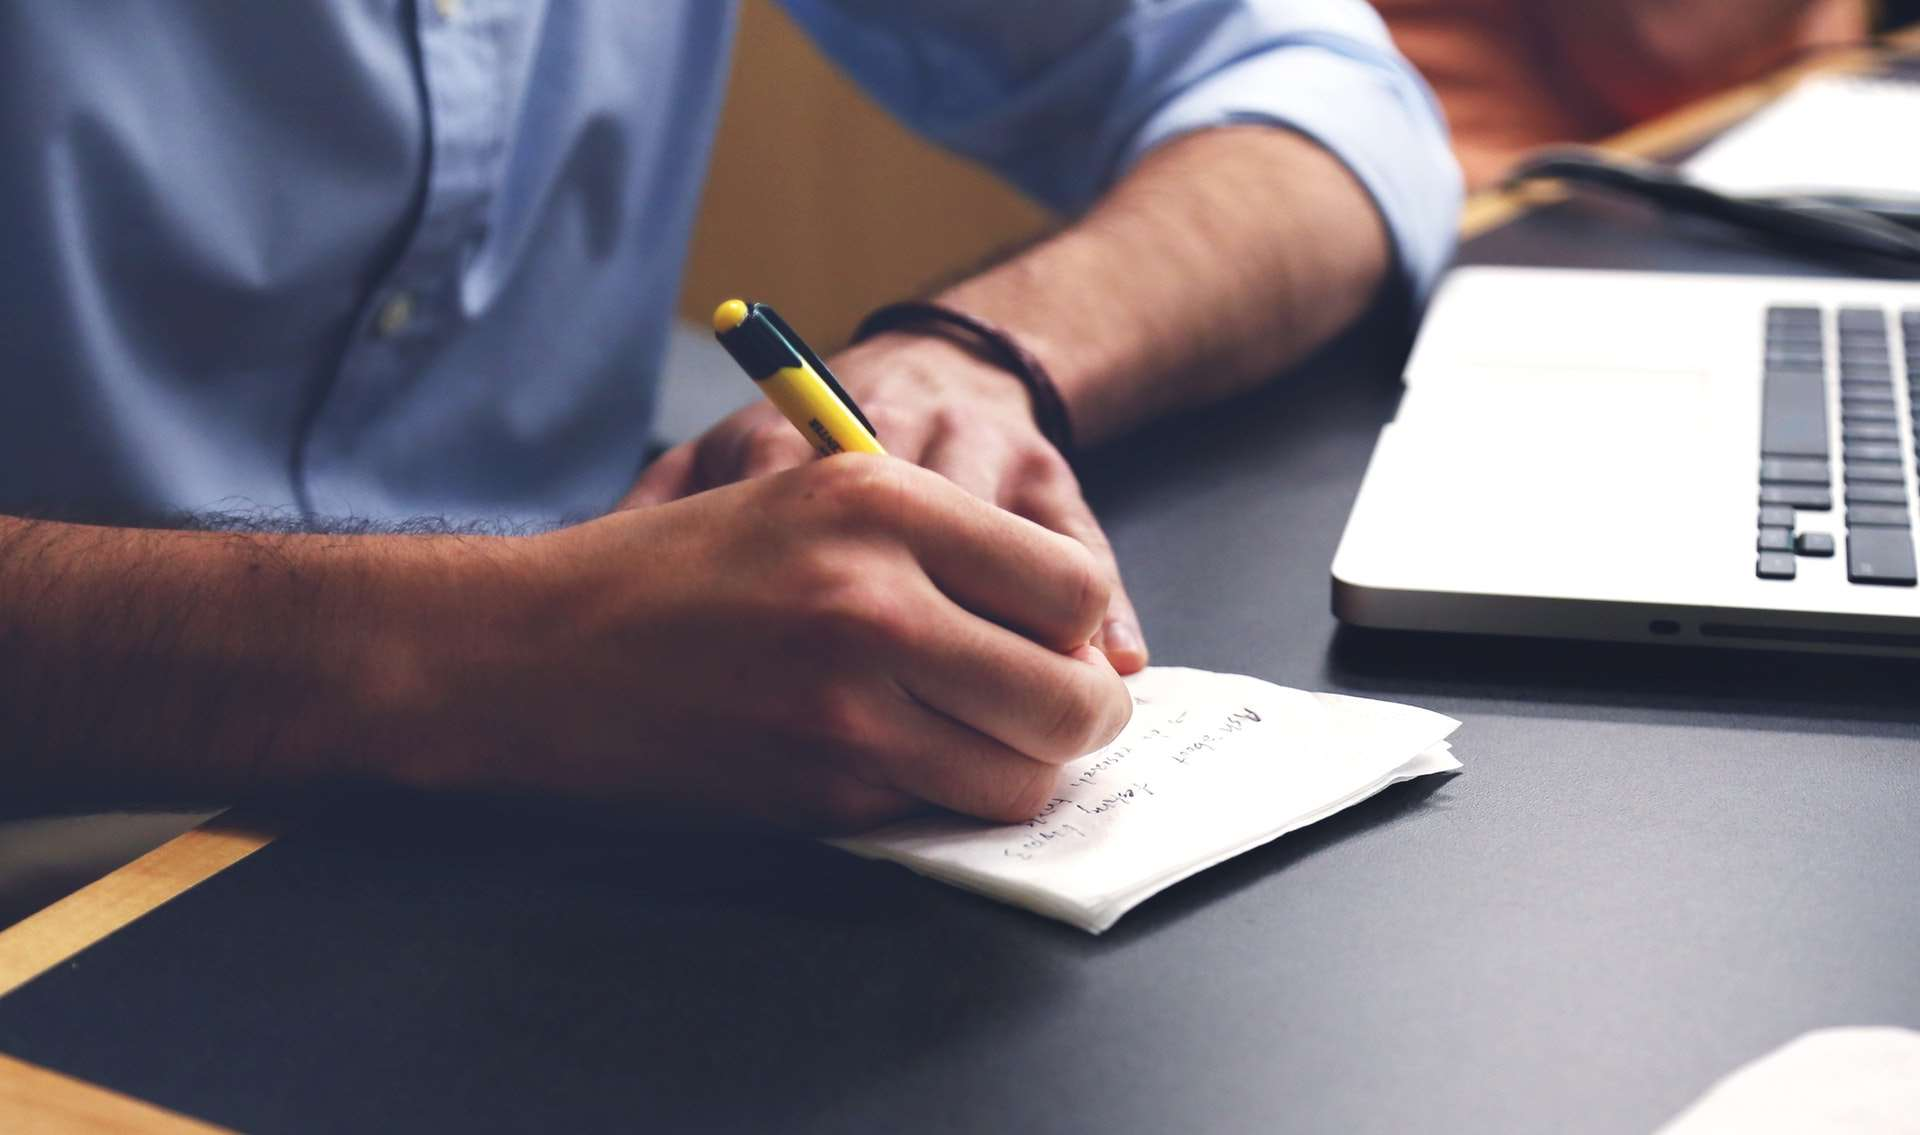 Here are four top tips for effective note-taking practice in the workplace to help you make the most of your time and memory.